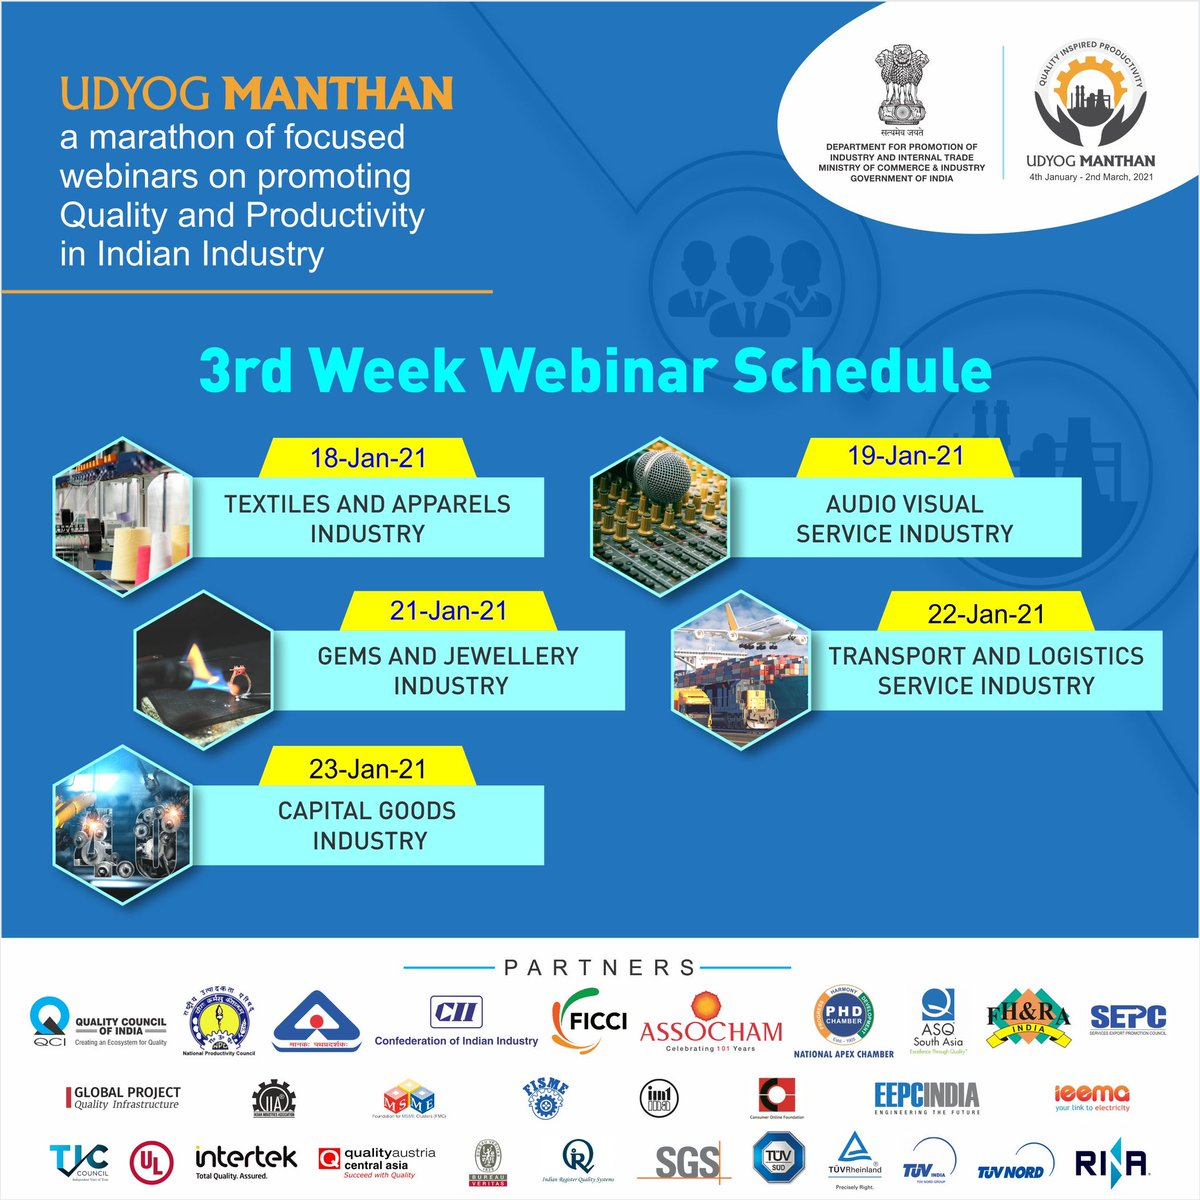 #UdyogManthan   The 3rd week's webinar schedule is out. Interested to know insights from experts on how to improve #Quality & #Productivity in your industry?  Register Now:    #AatmaNirbharBharat #MakeInIndia #DigitalIndia